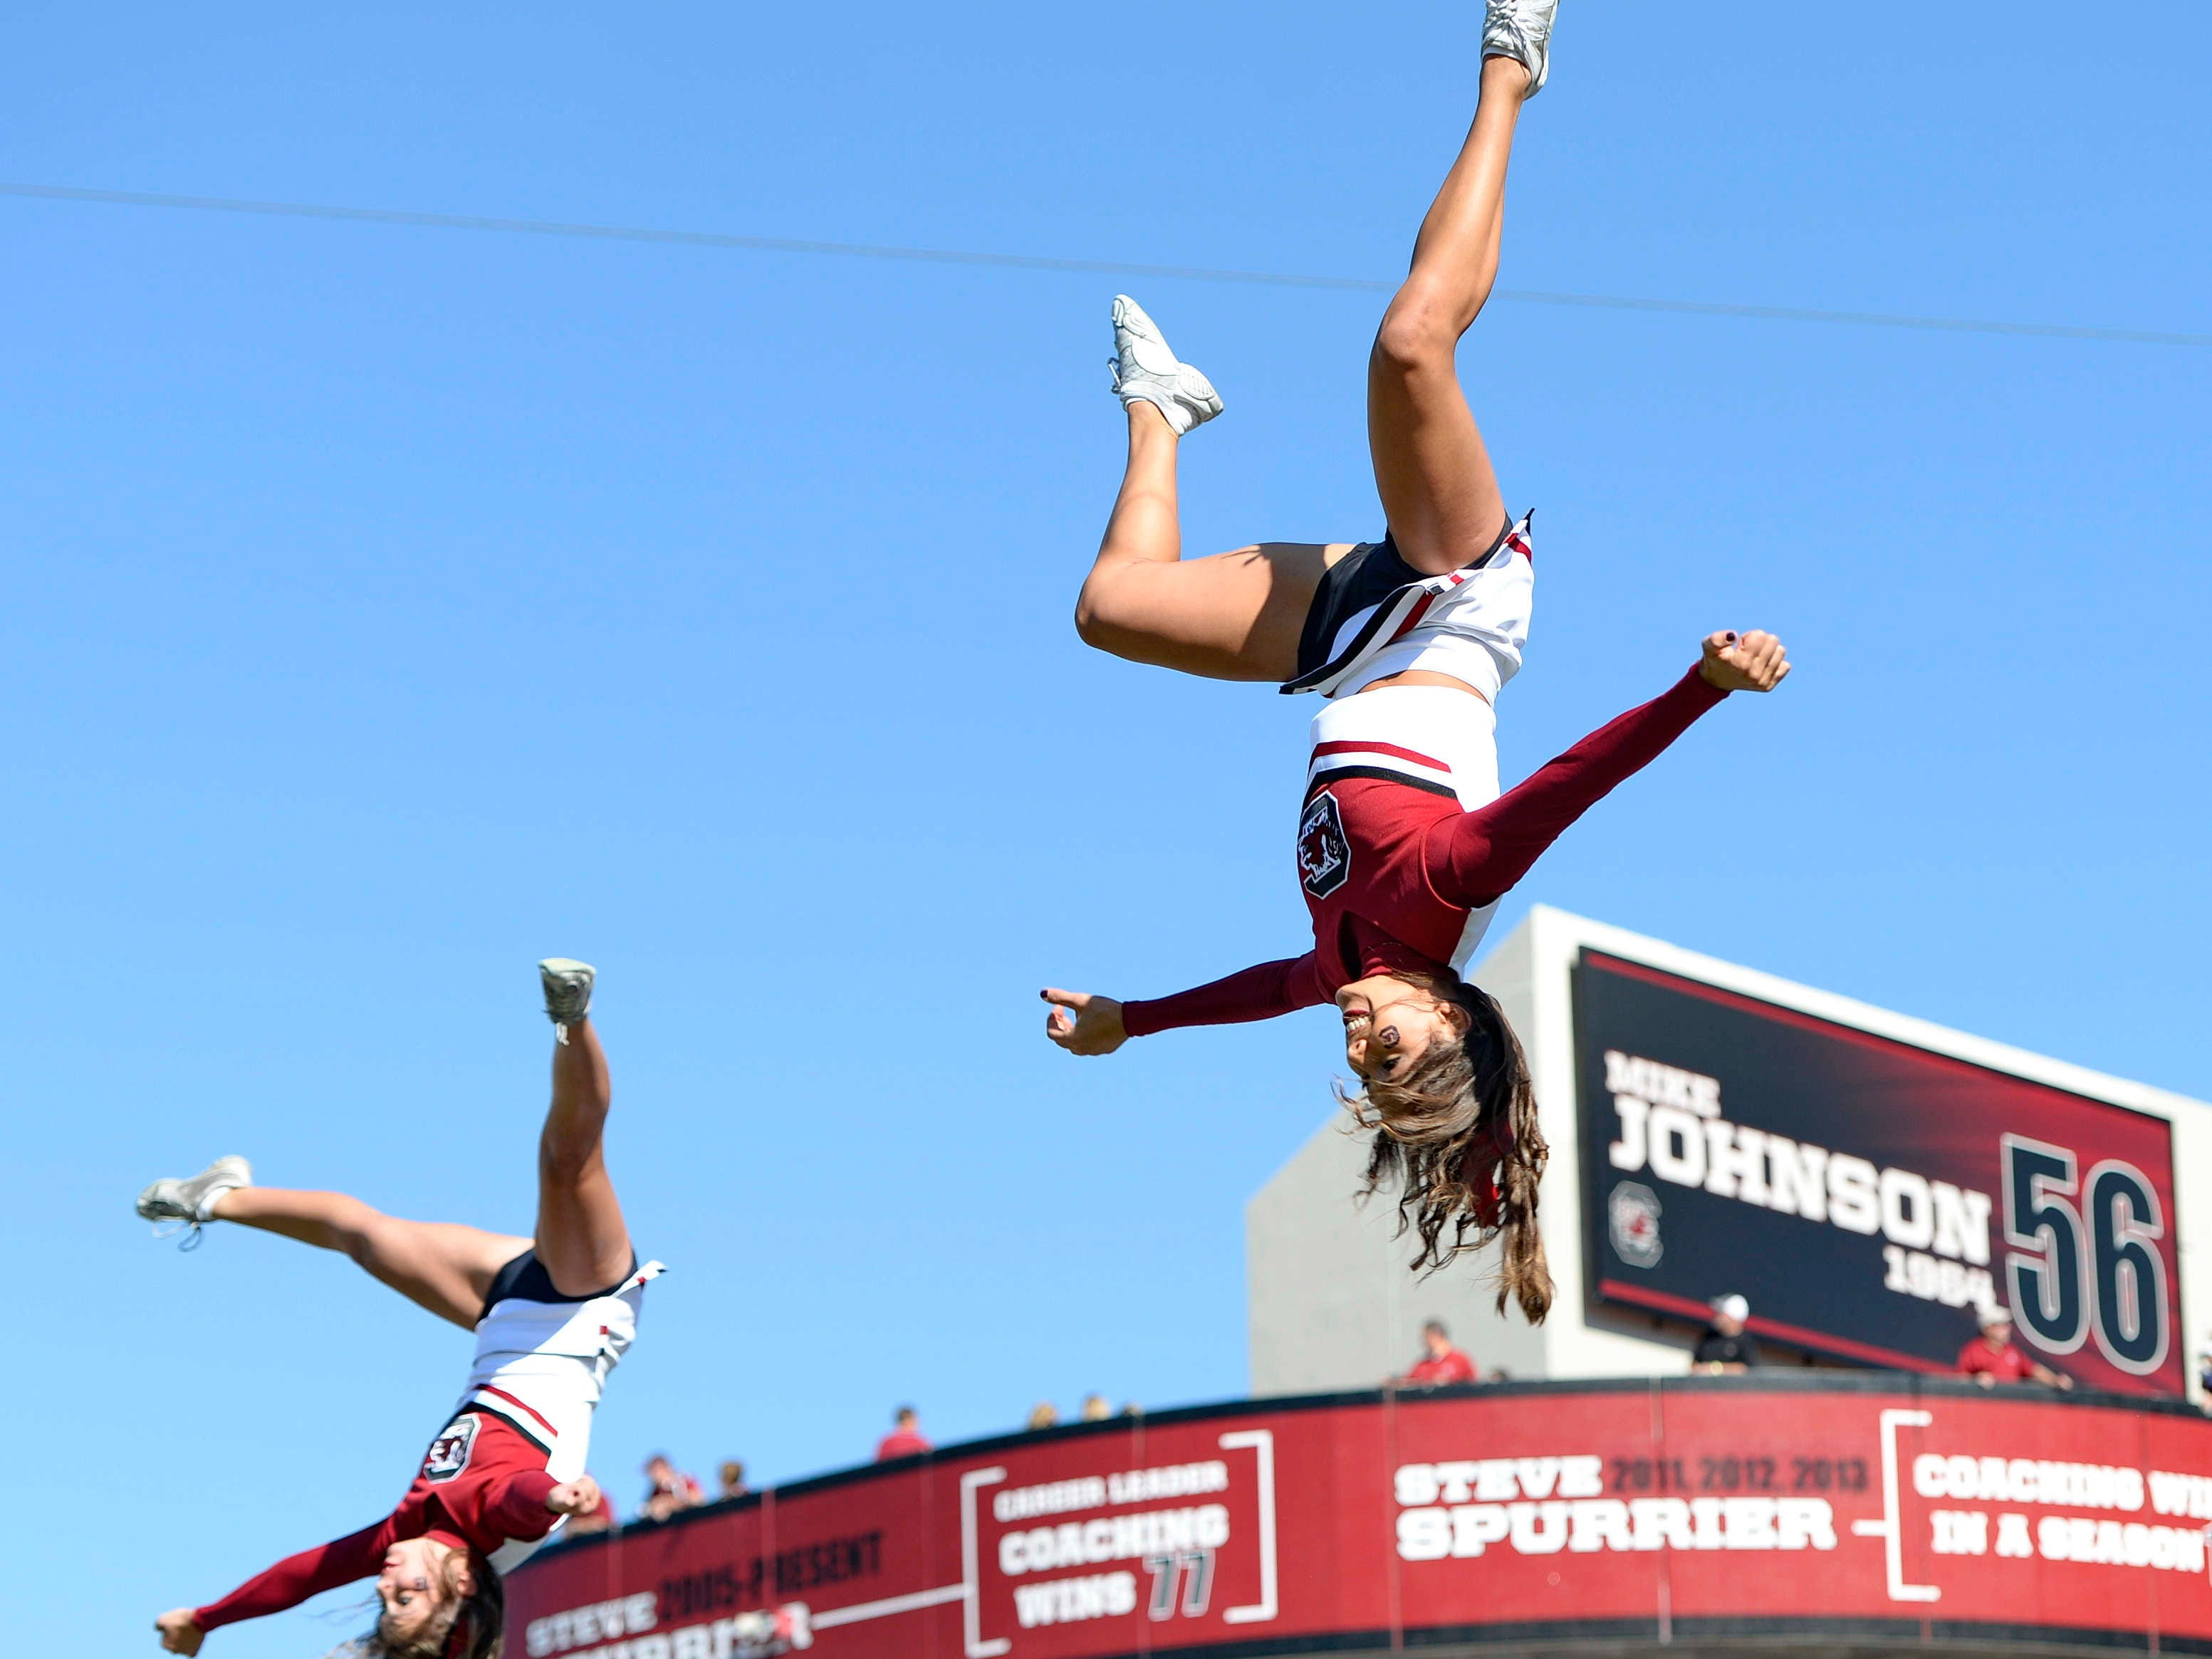 South Carolina cheerleaders perform stunts during an NCAA college football game against Furman in Columbia, S.C.,  Saturday, Oct. 18, 2014. (AP Photo/ Richard Shiro)